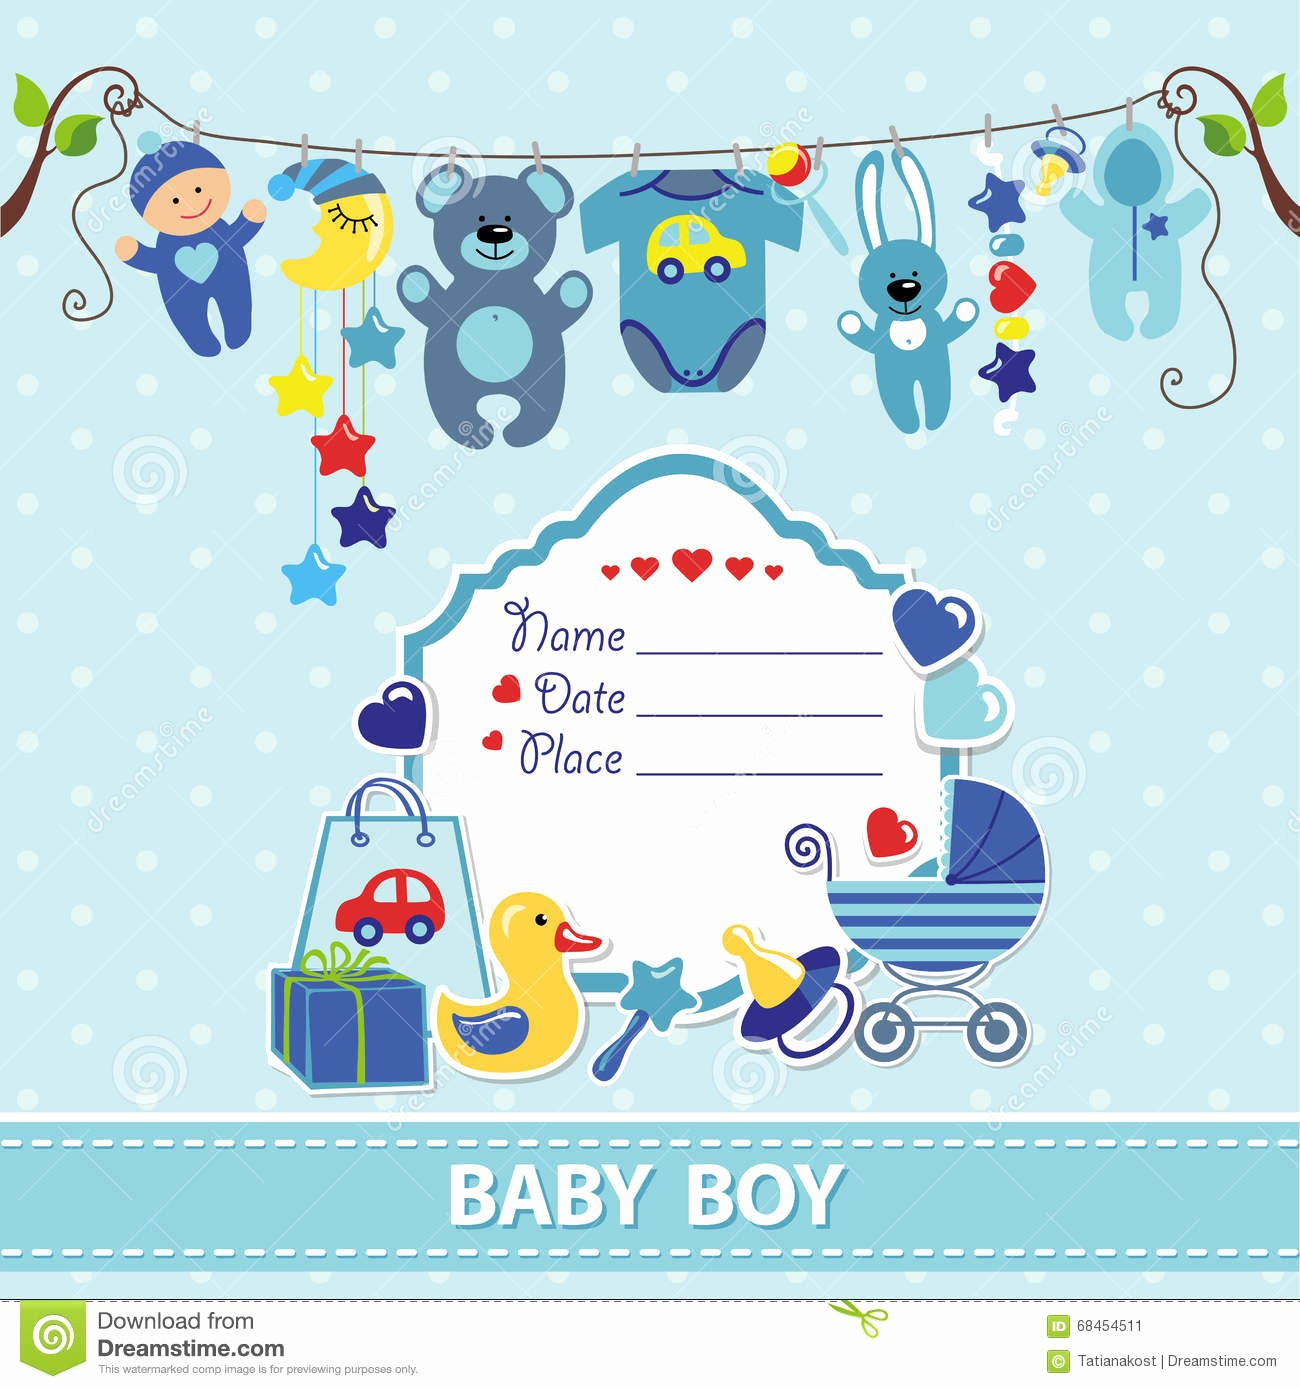 Baby Boy Announcements Free Templates New Free Baby Shower Labels to Download for Boy New Born Card